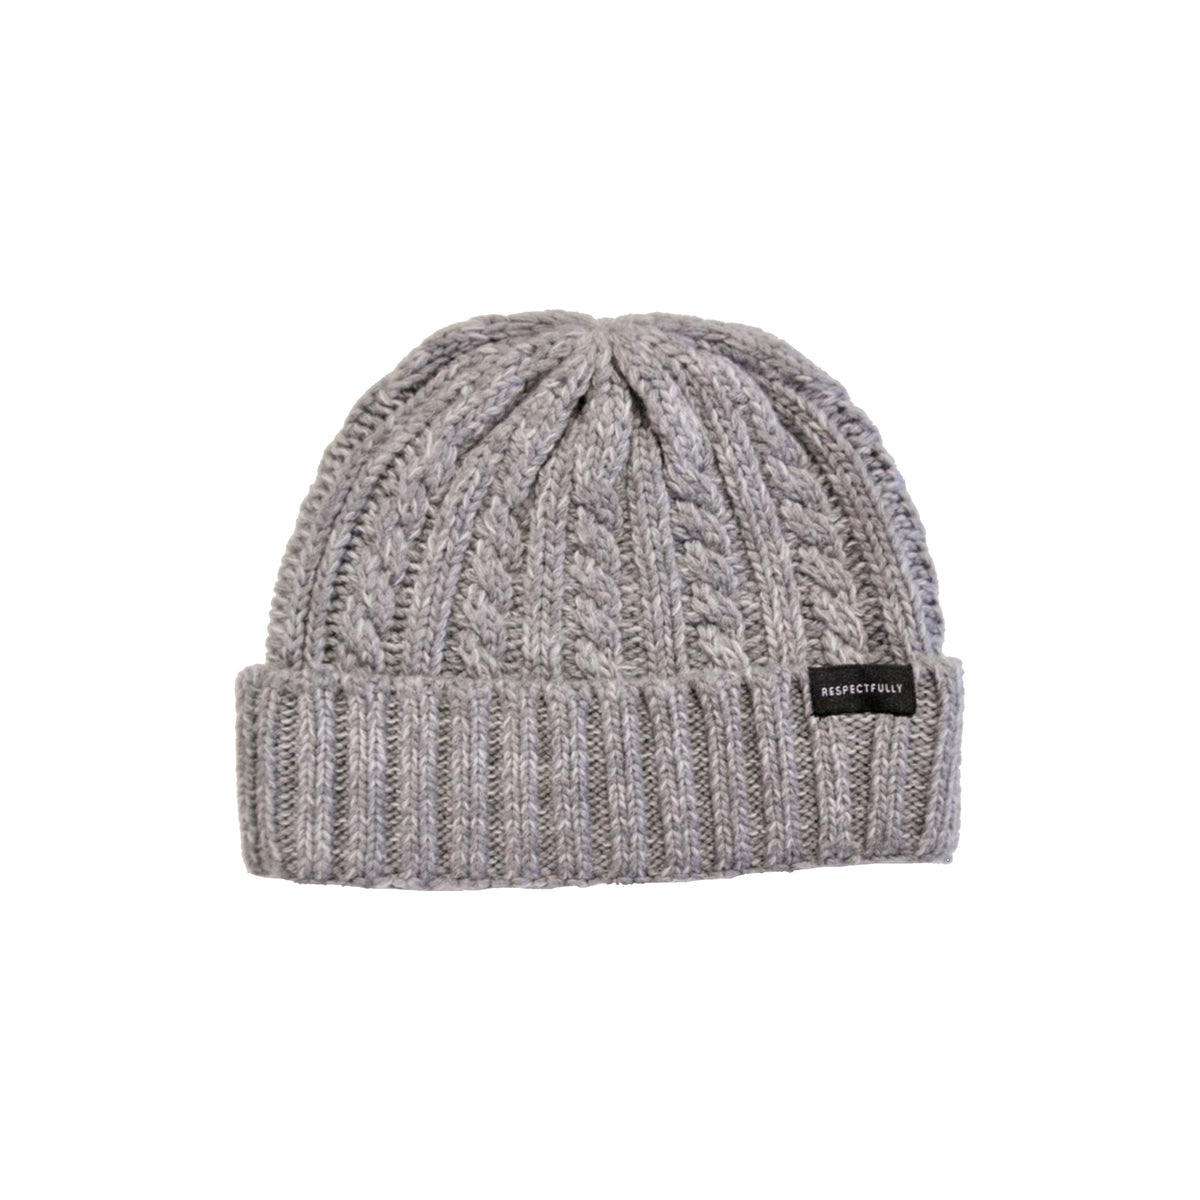 Knitted Respectfully Beanie